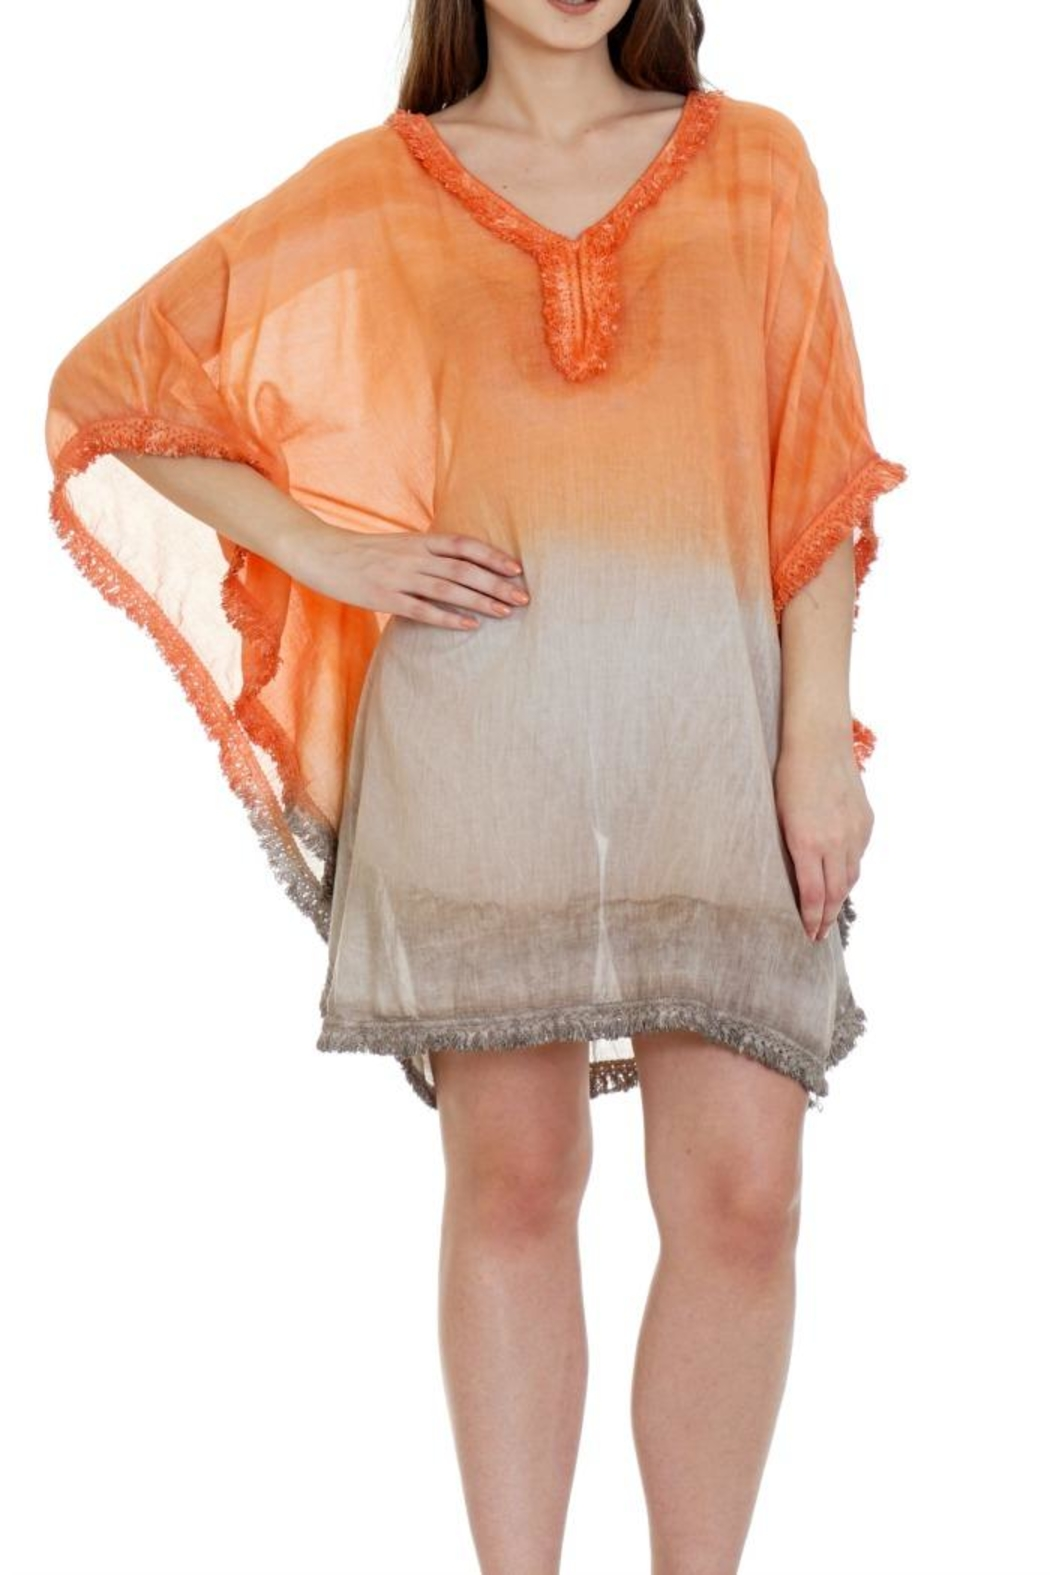 Patricia's Presents Fringed Cotton Caftan - Main Image